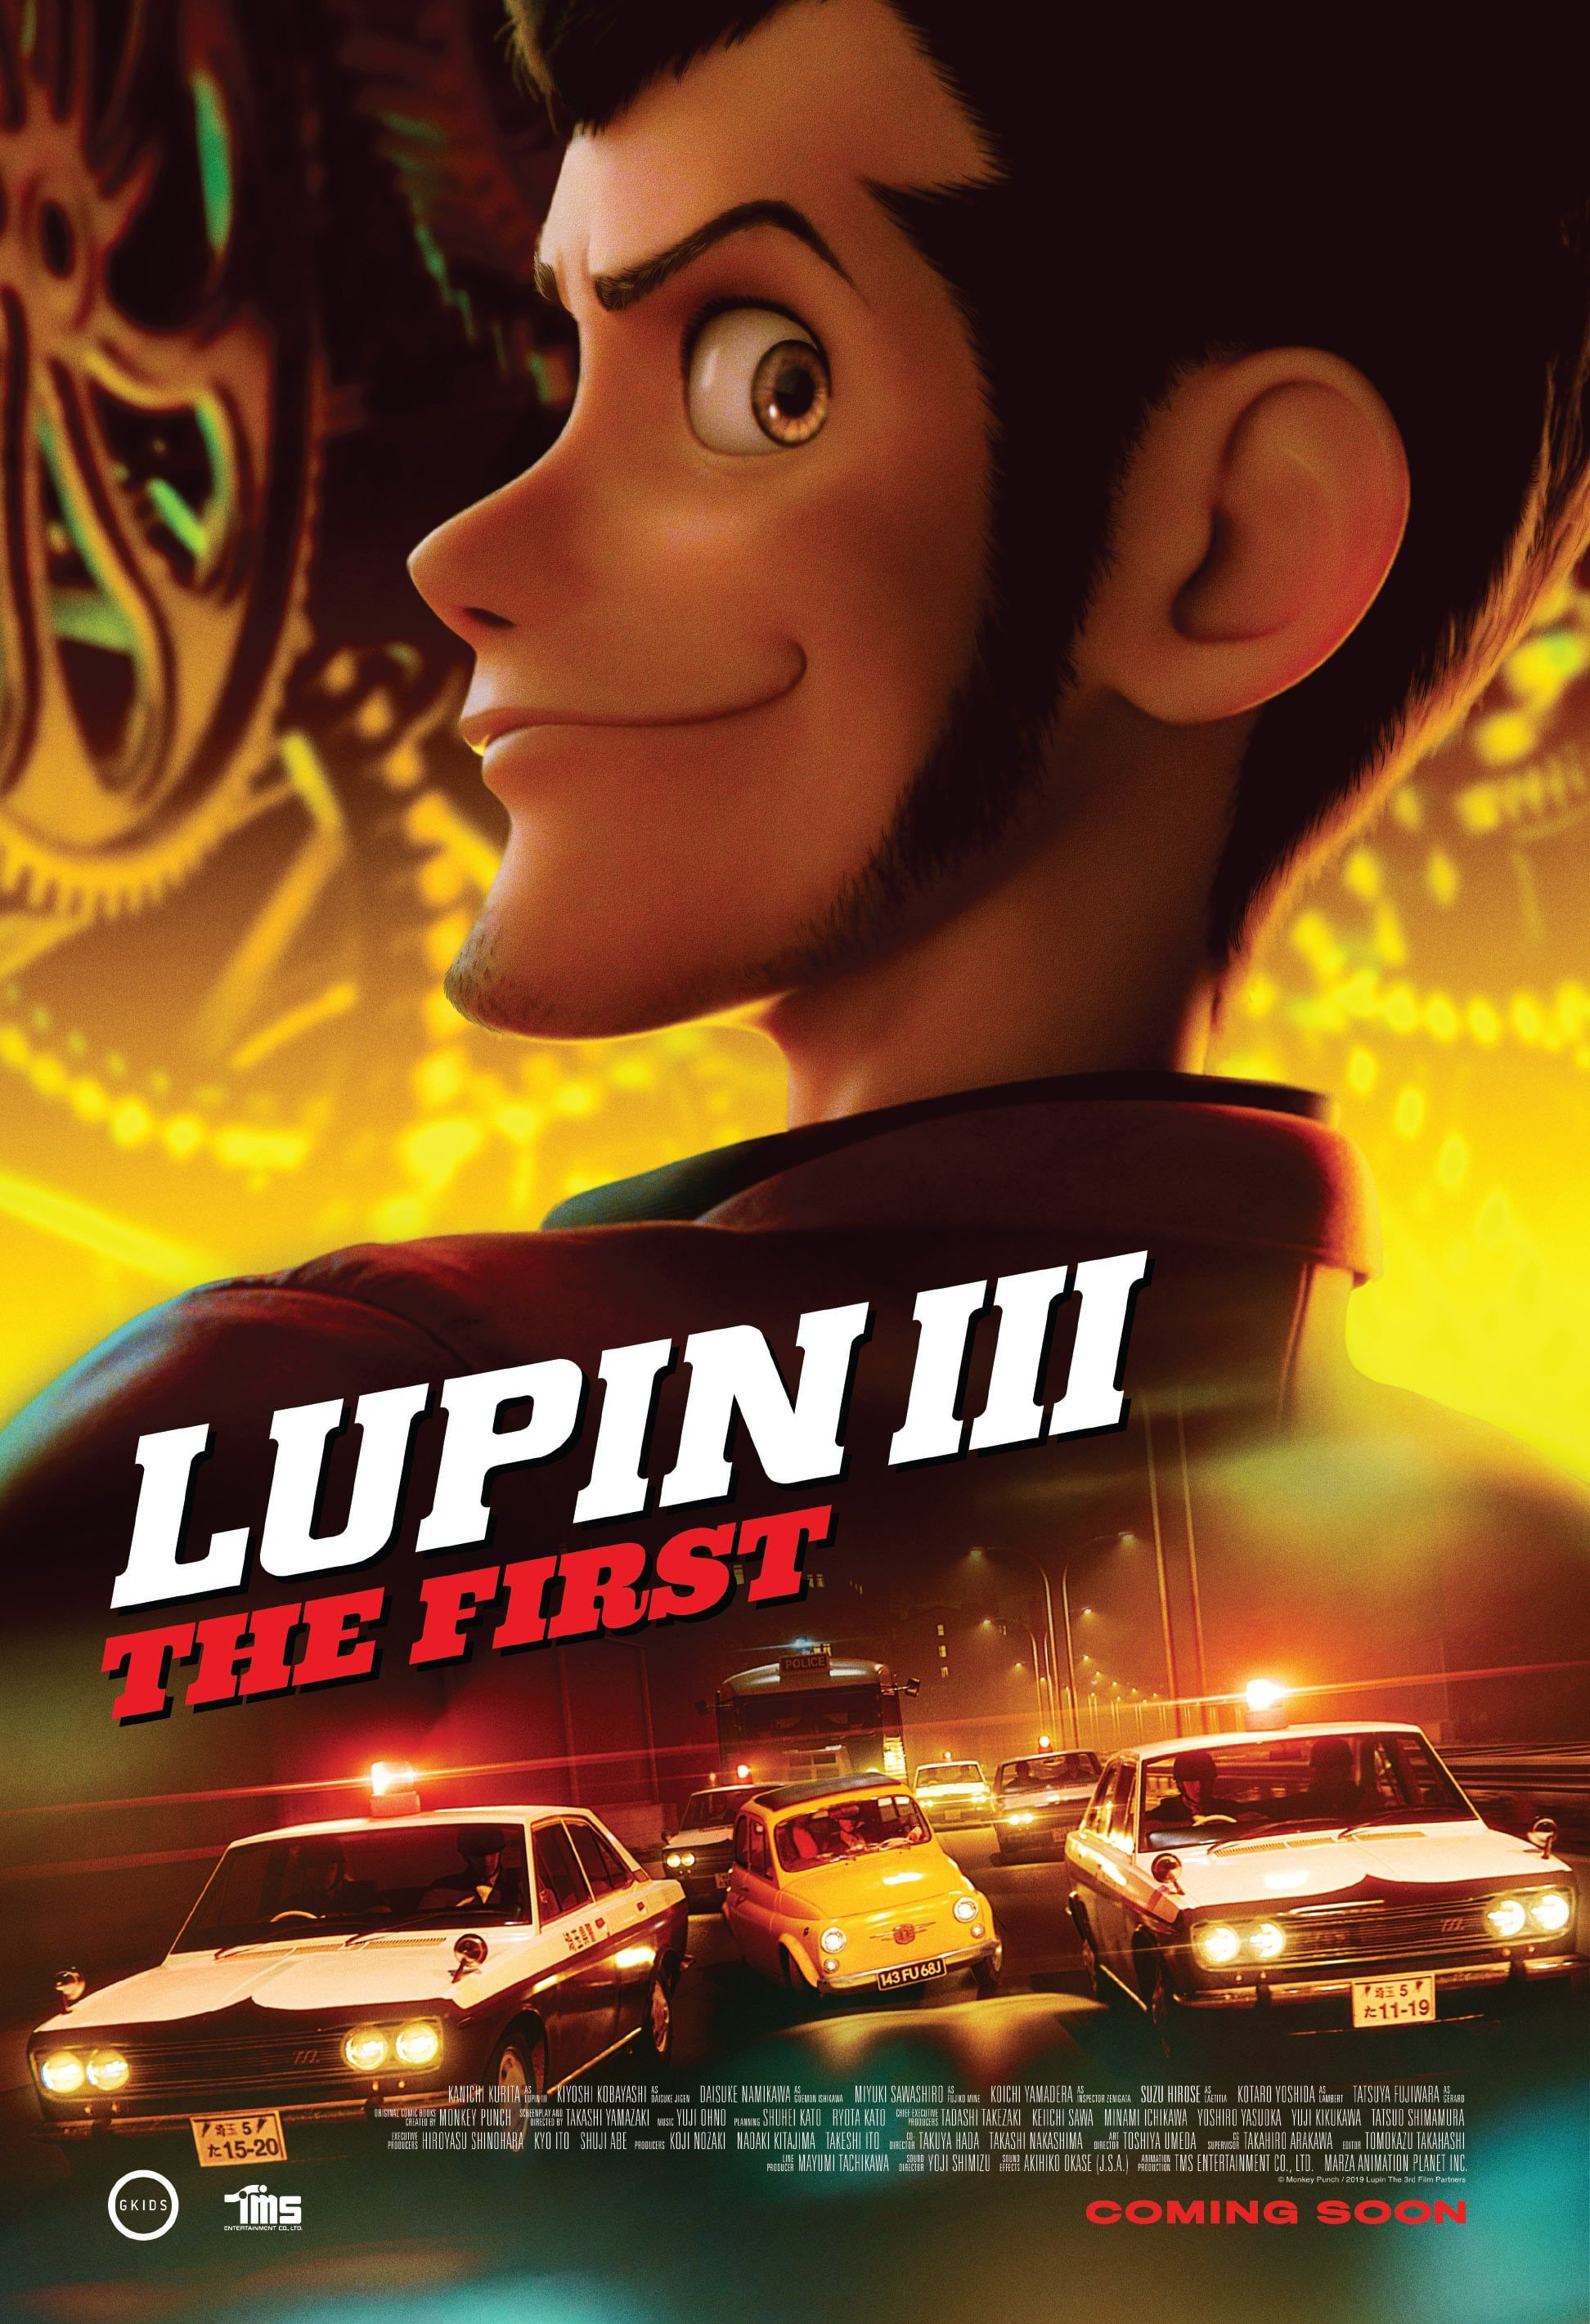 Regarder Lupin 3 The First 2020 Film Complet Streaming Vf Vostfr Lupin Iii Anime Films Anime